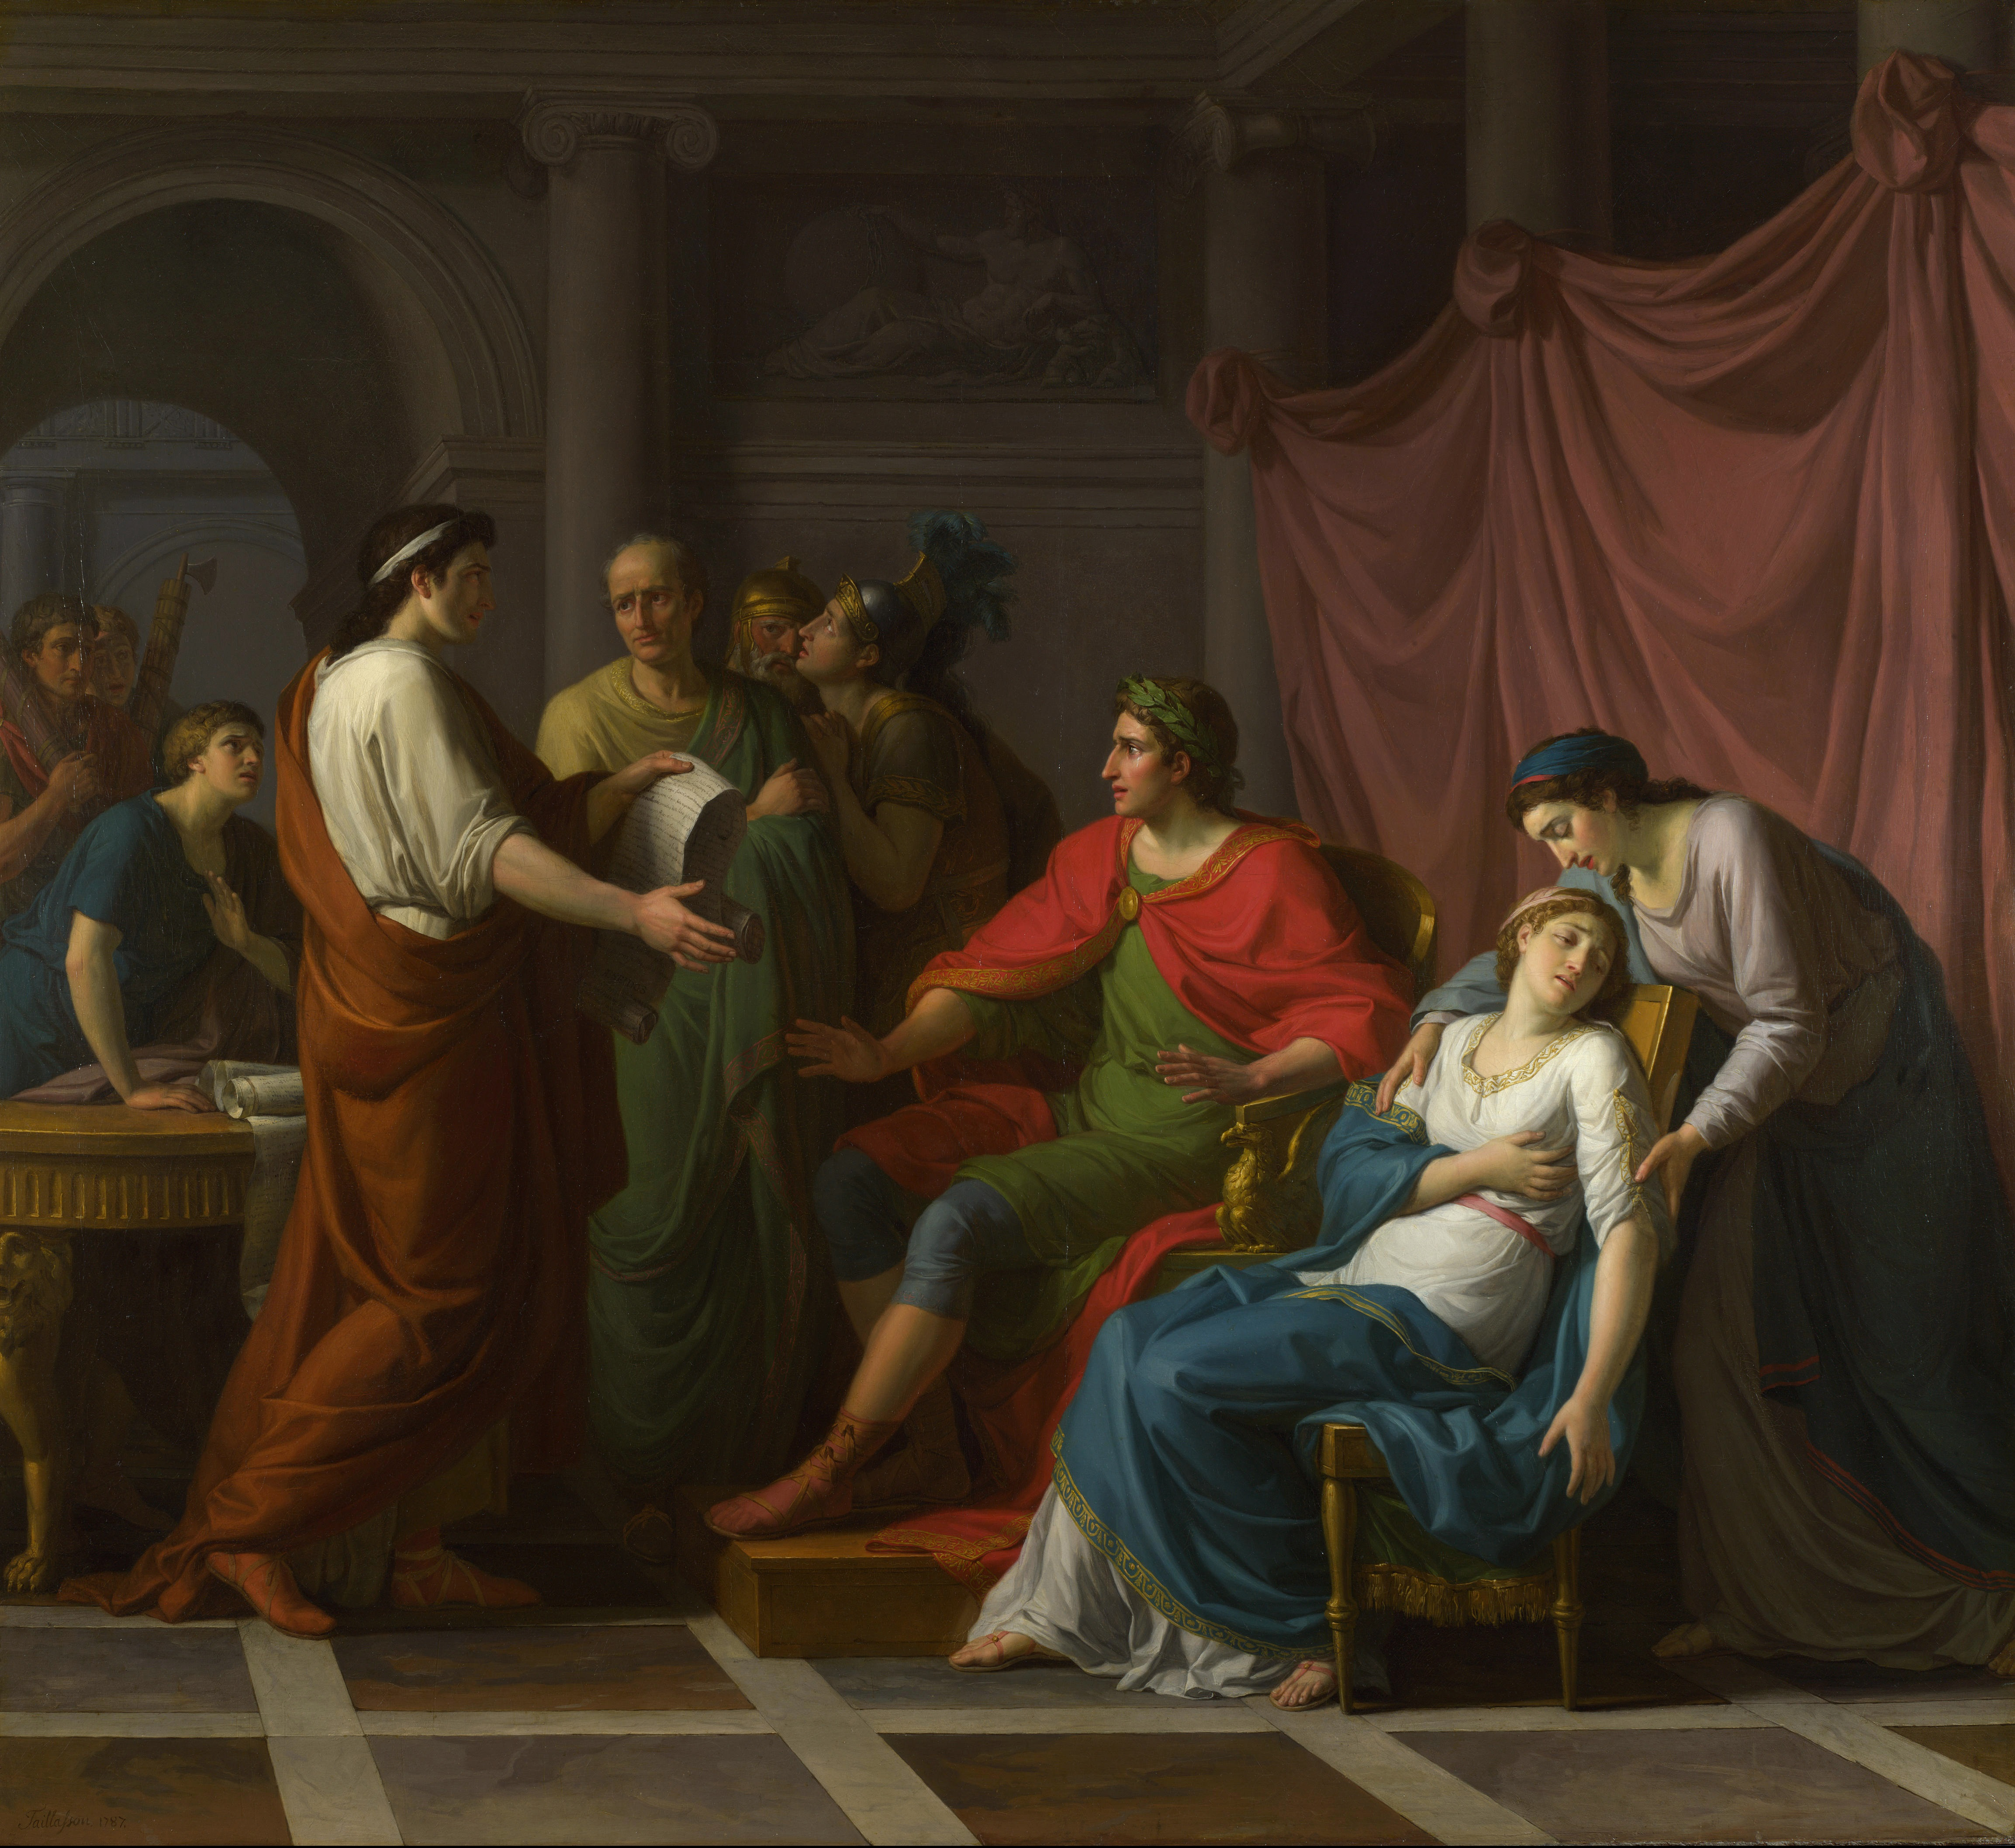 Virgil reading the 'Aeneid' to Augustus and Octavia by Jean-Joseph Taillasson